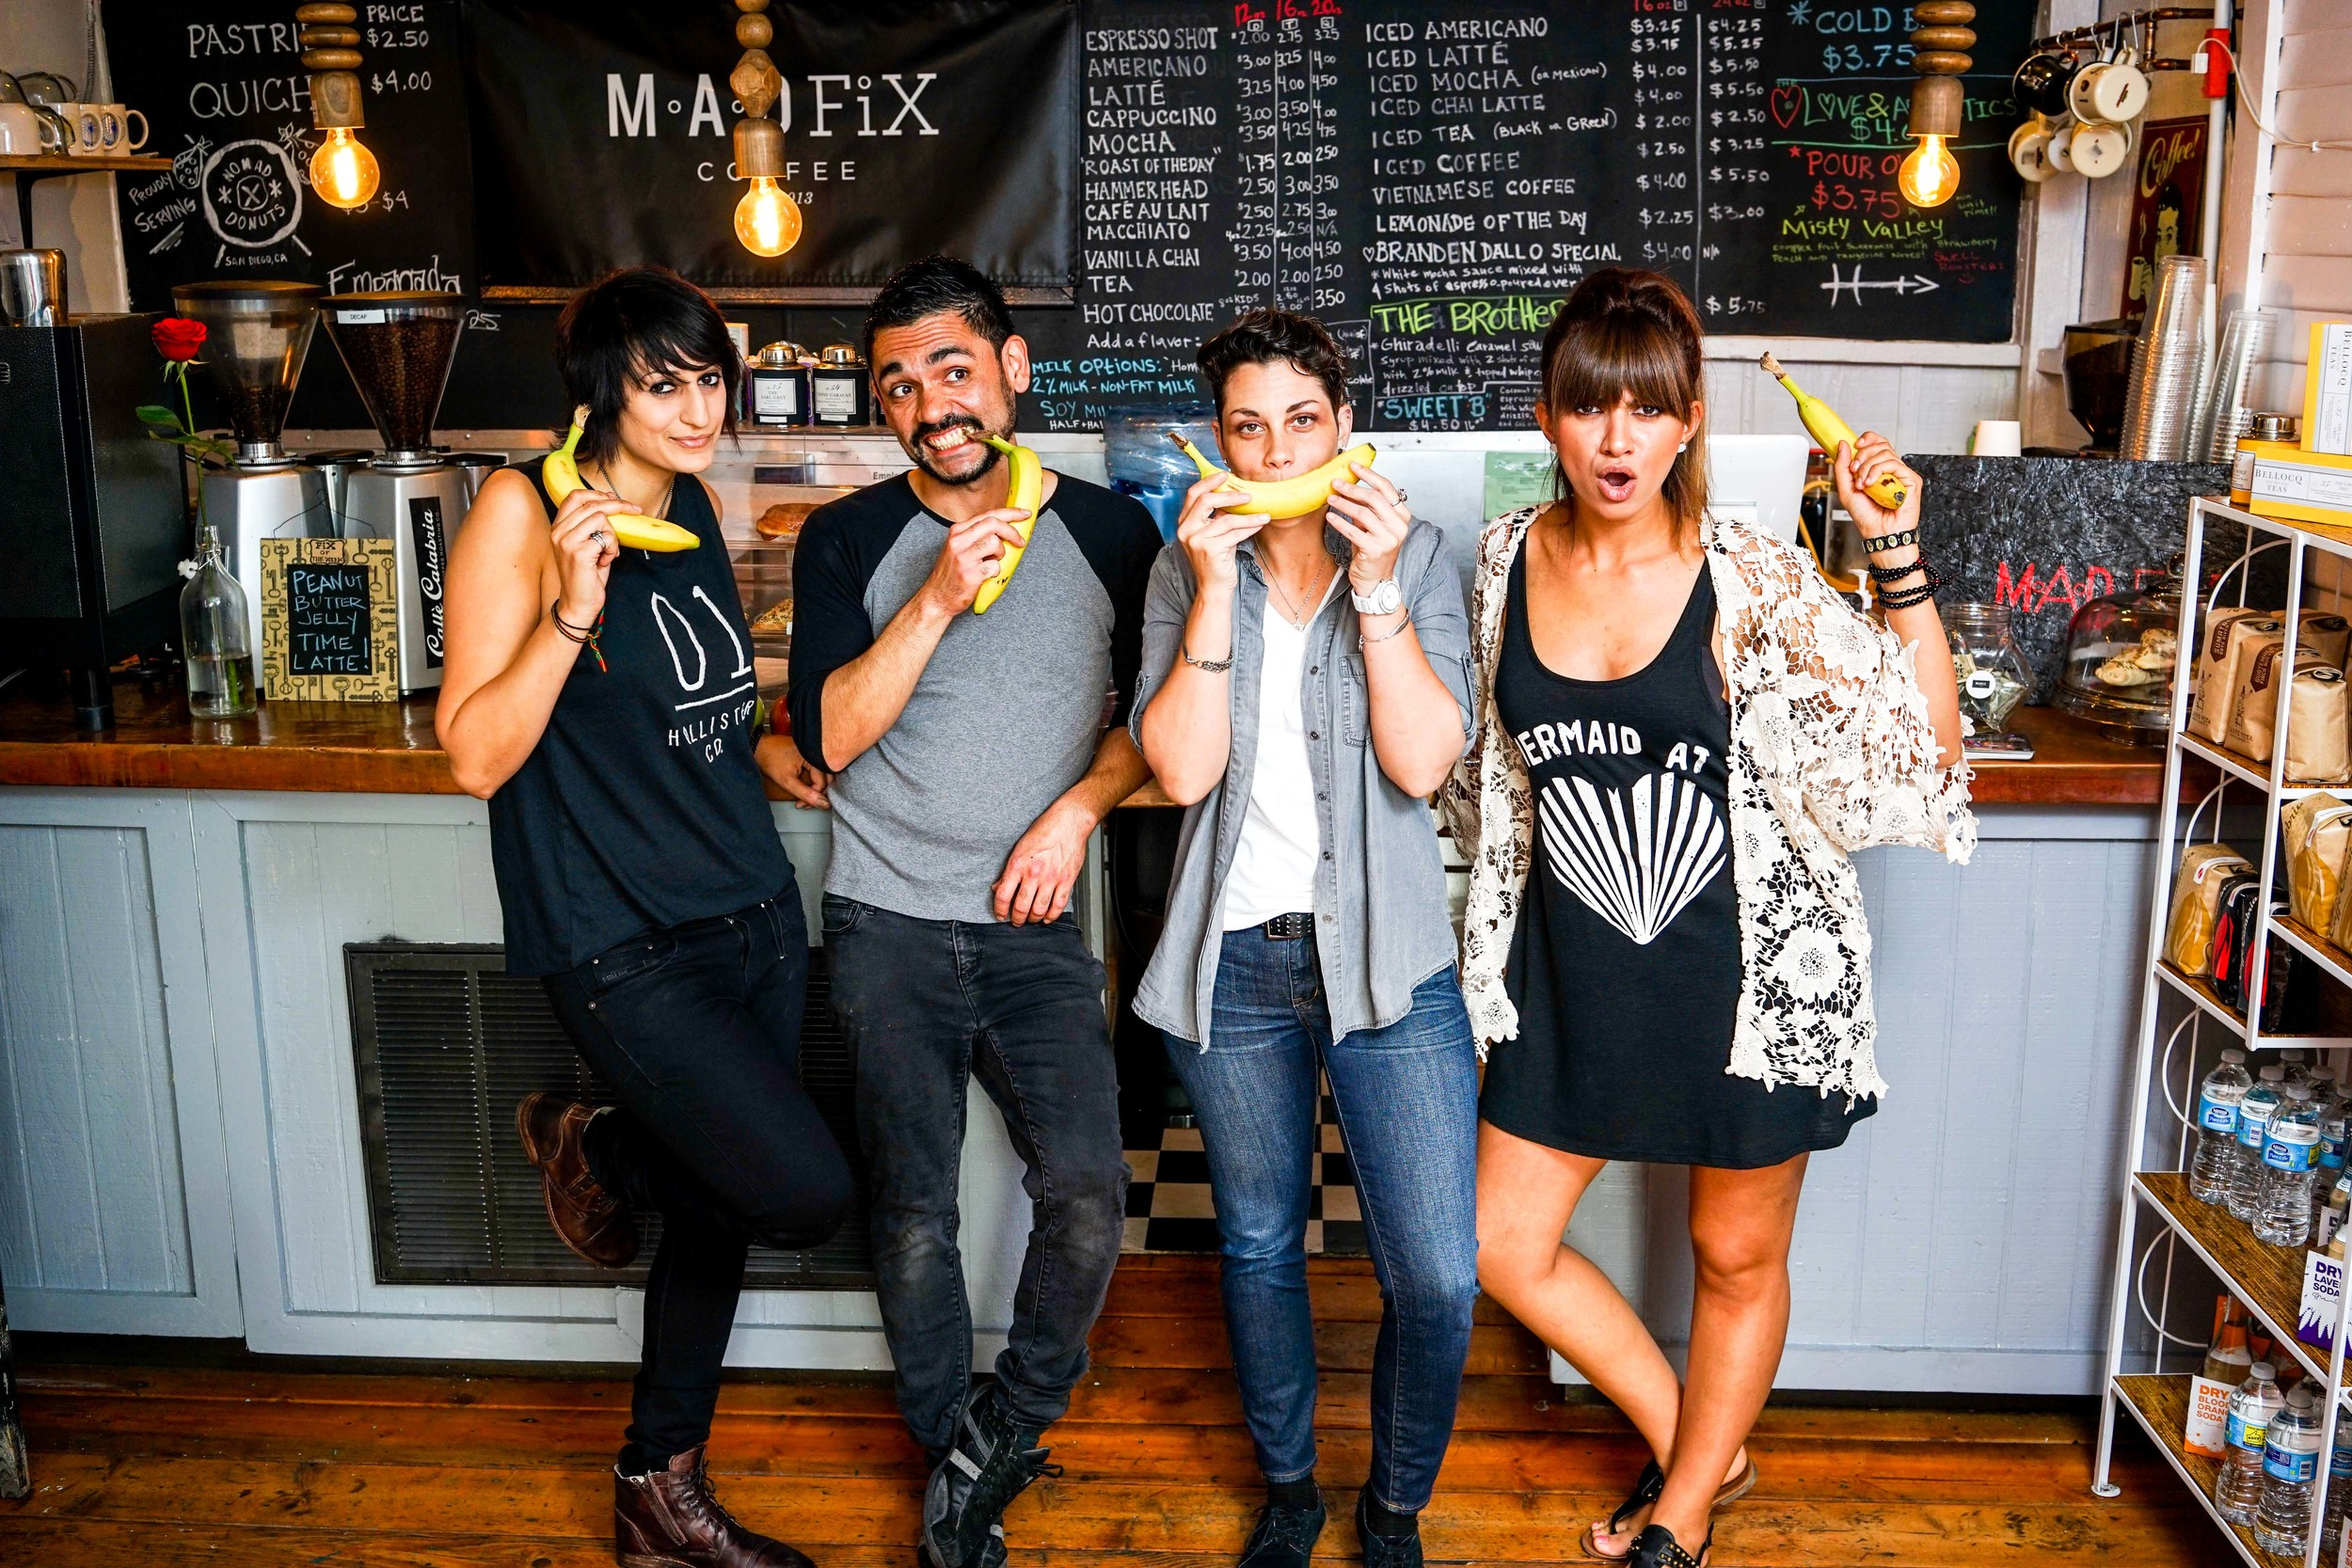 The M.A.D. FiX Team has gone bananas. Photo by Jose Lopez.